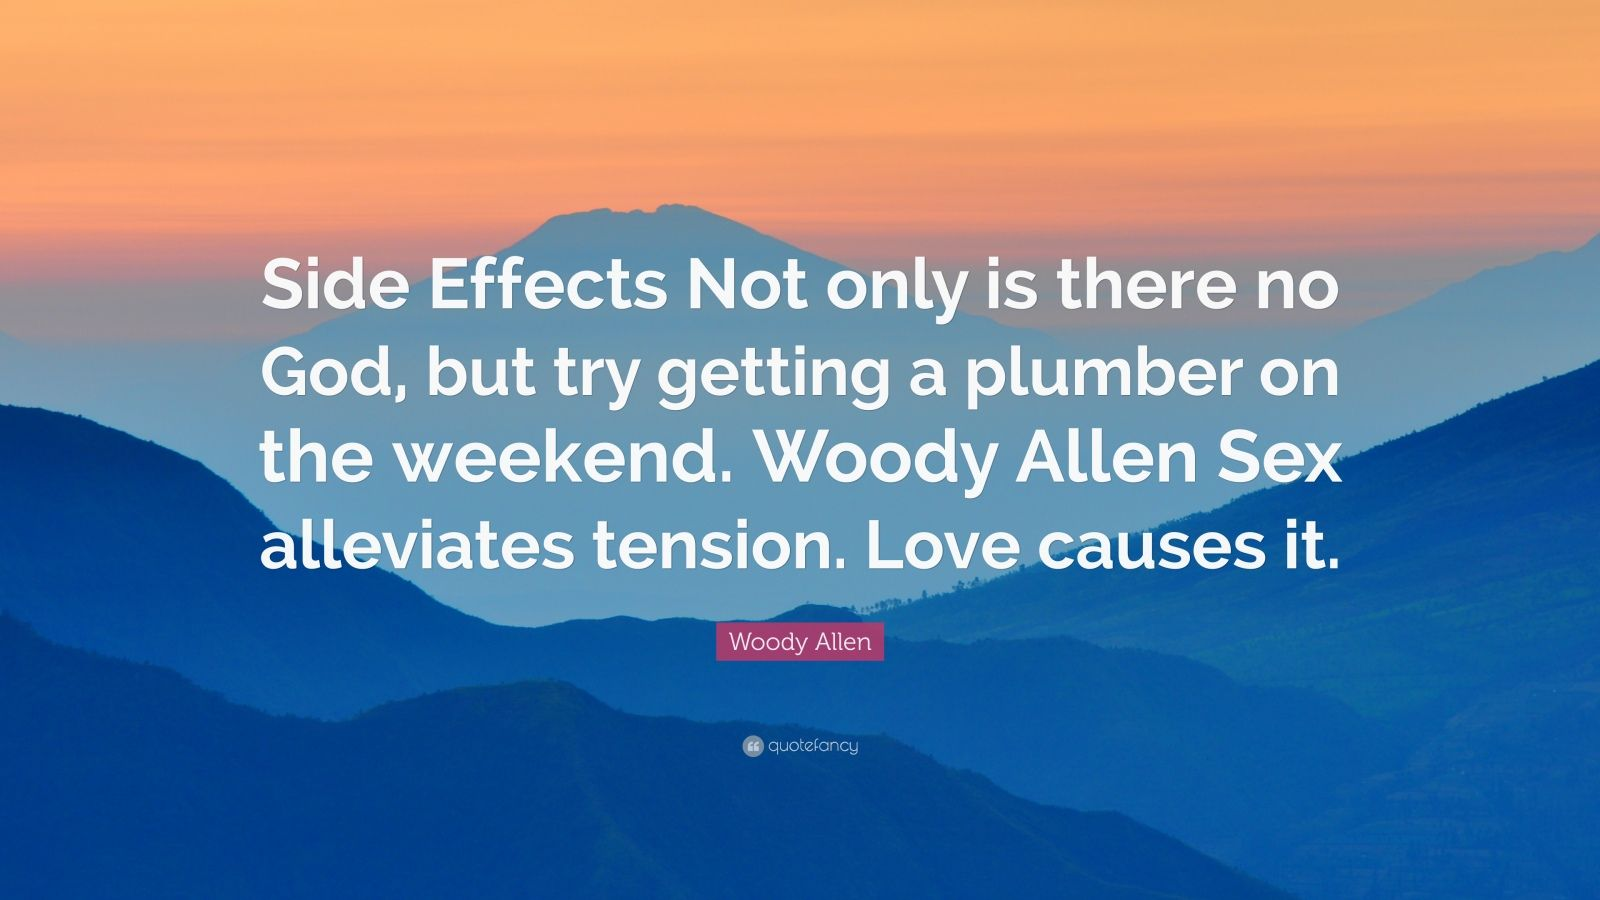 """Woody Allen Quote: """"Side Effects Not only is there no God, but try getting a plumber on the weekend. Woody Allen Sex alleviates tension. Love causes it."""""""